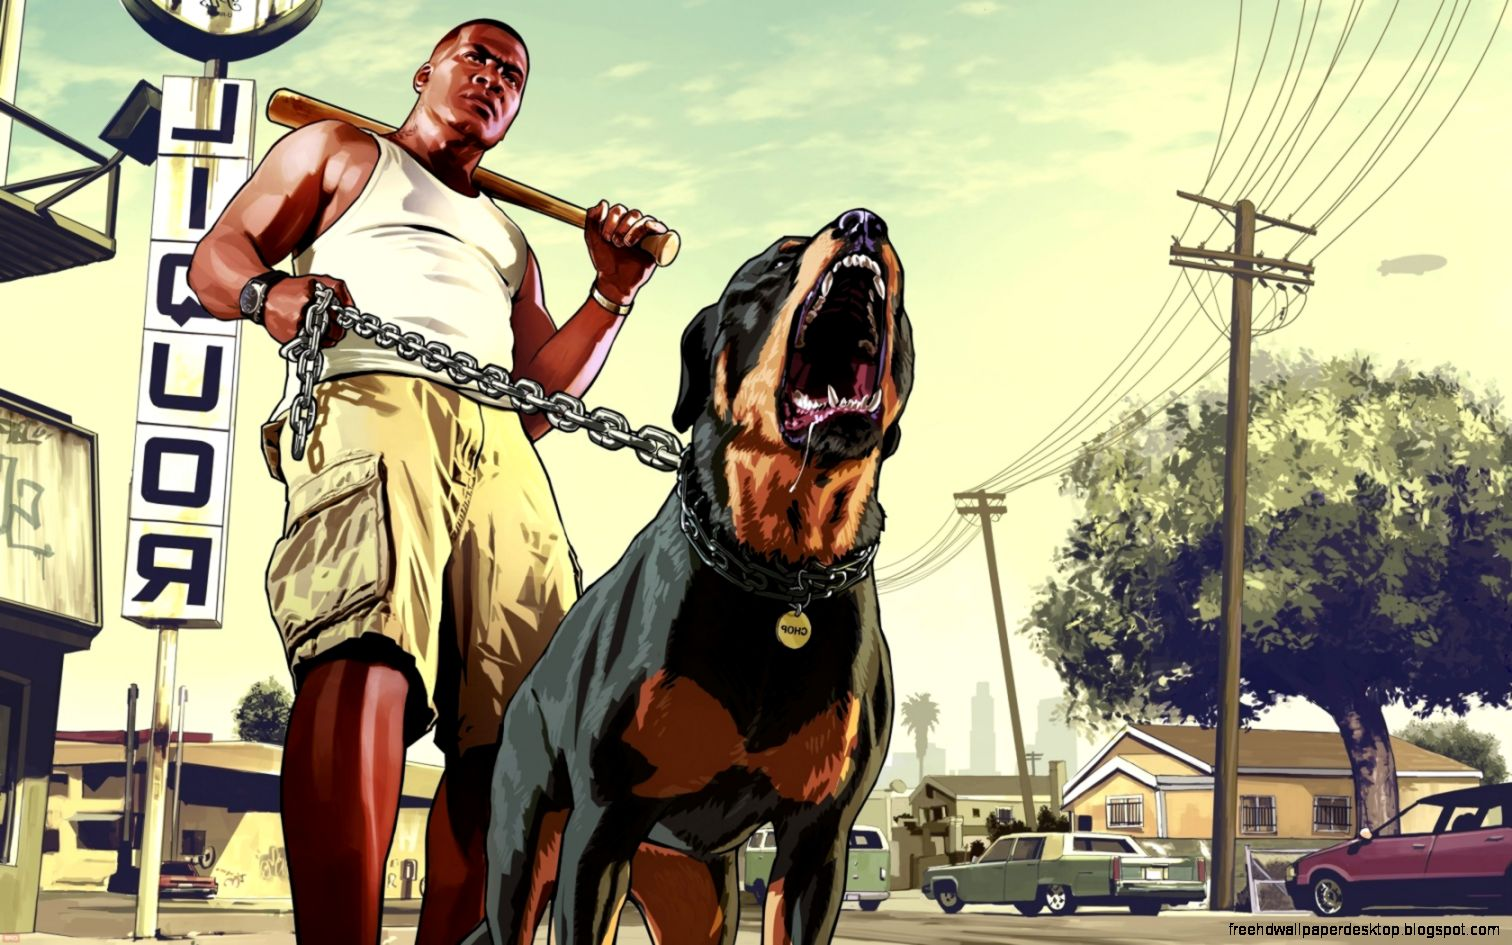 Gta 5 with dog wallpaper hd free high definition wallpapers - Gta v wallpaper ...